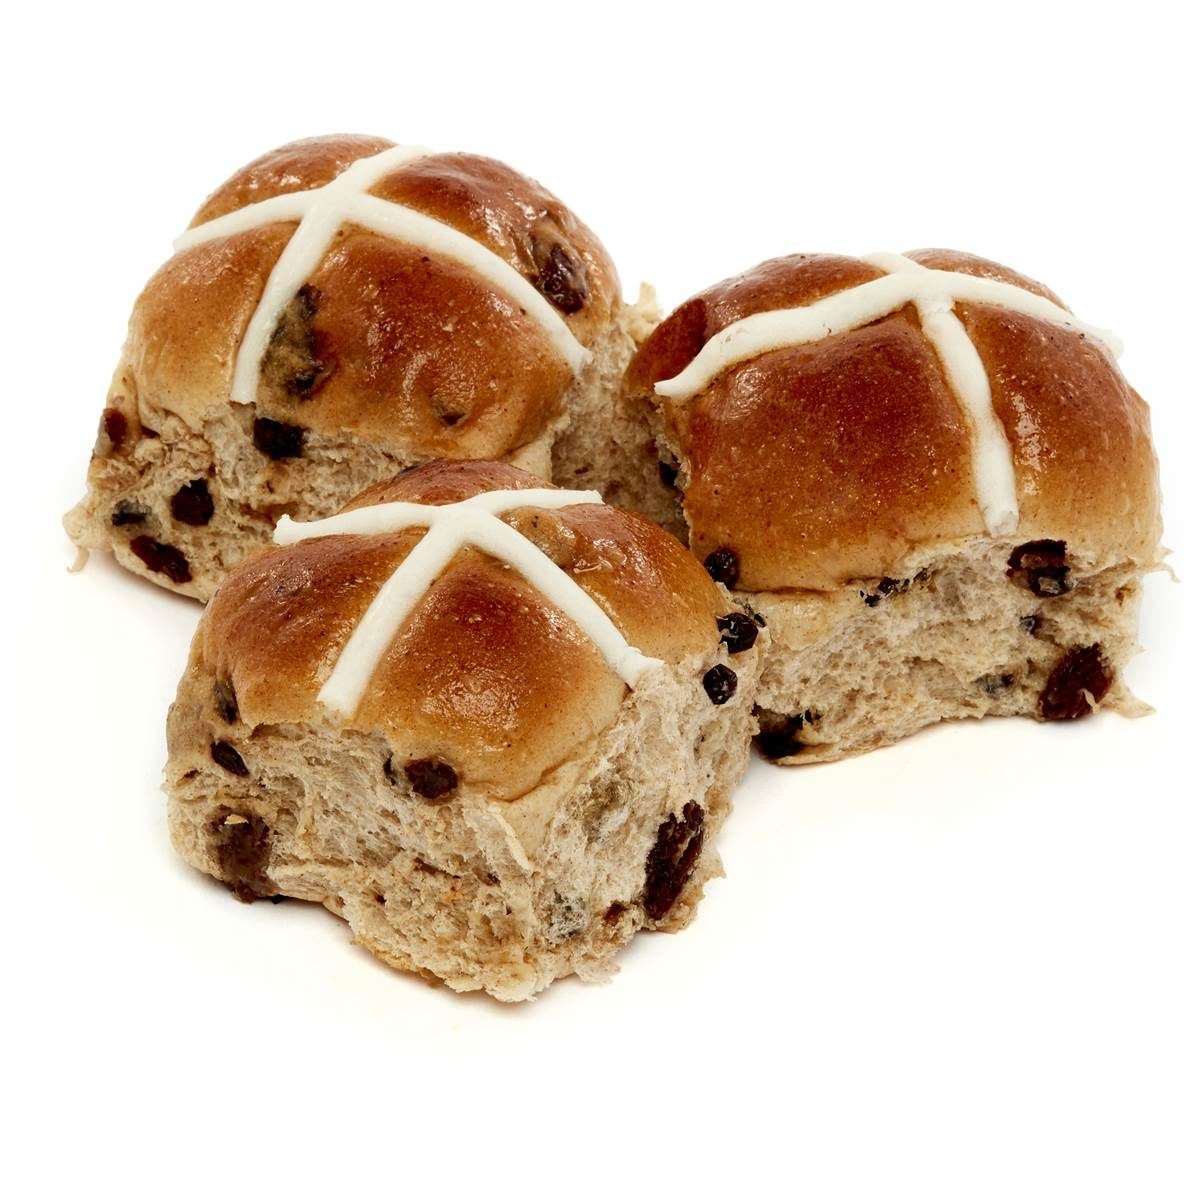 Hot Cross Bun Crisis.........We don't think so